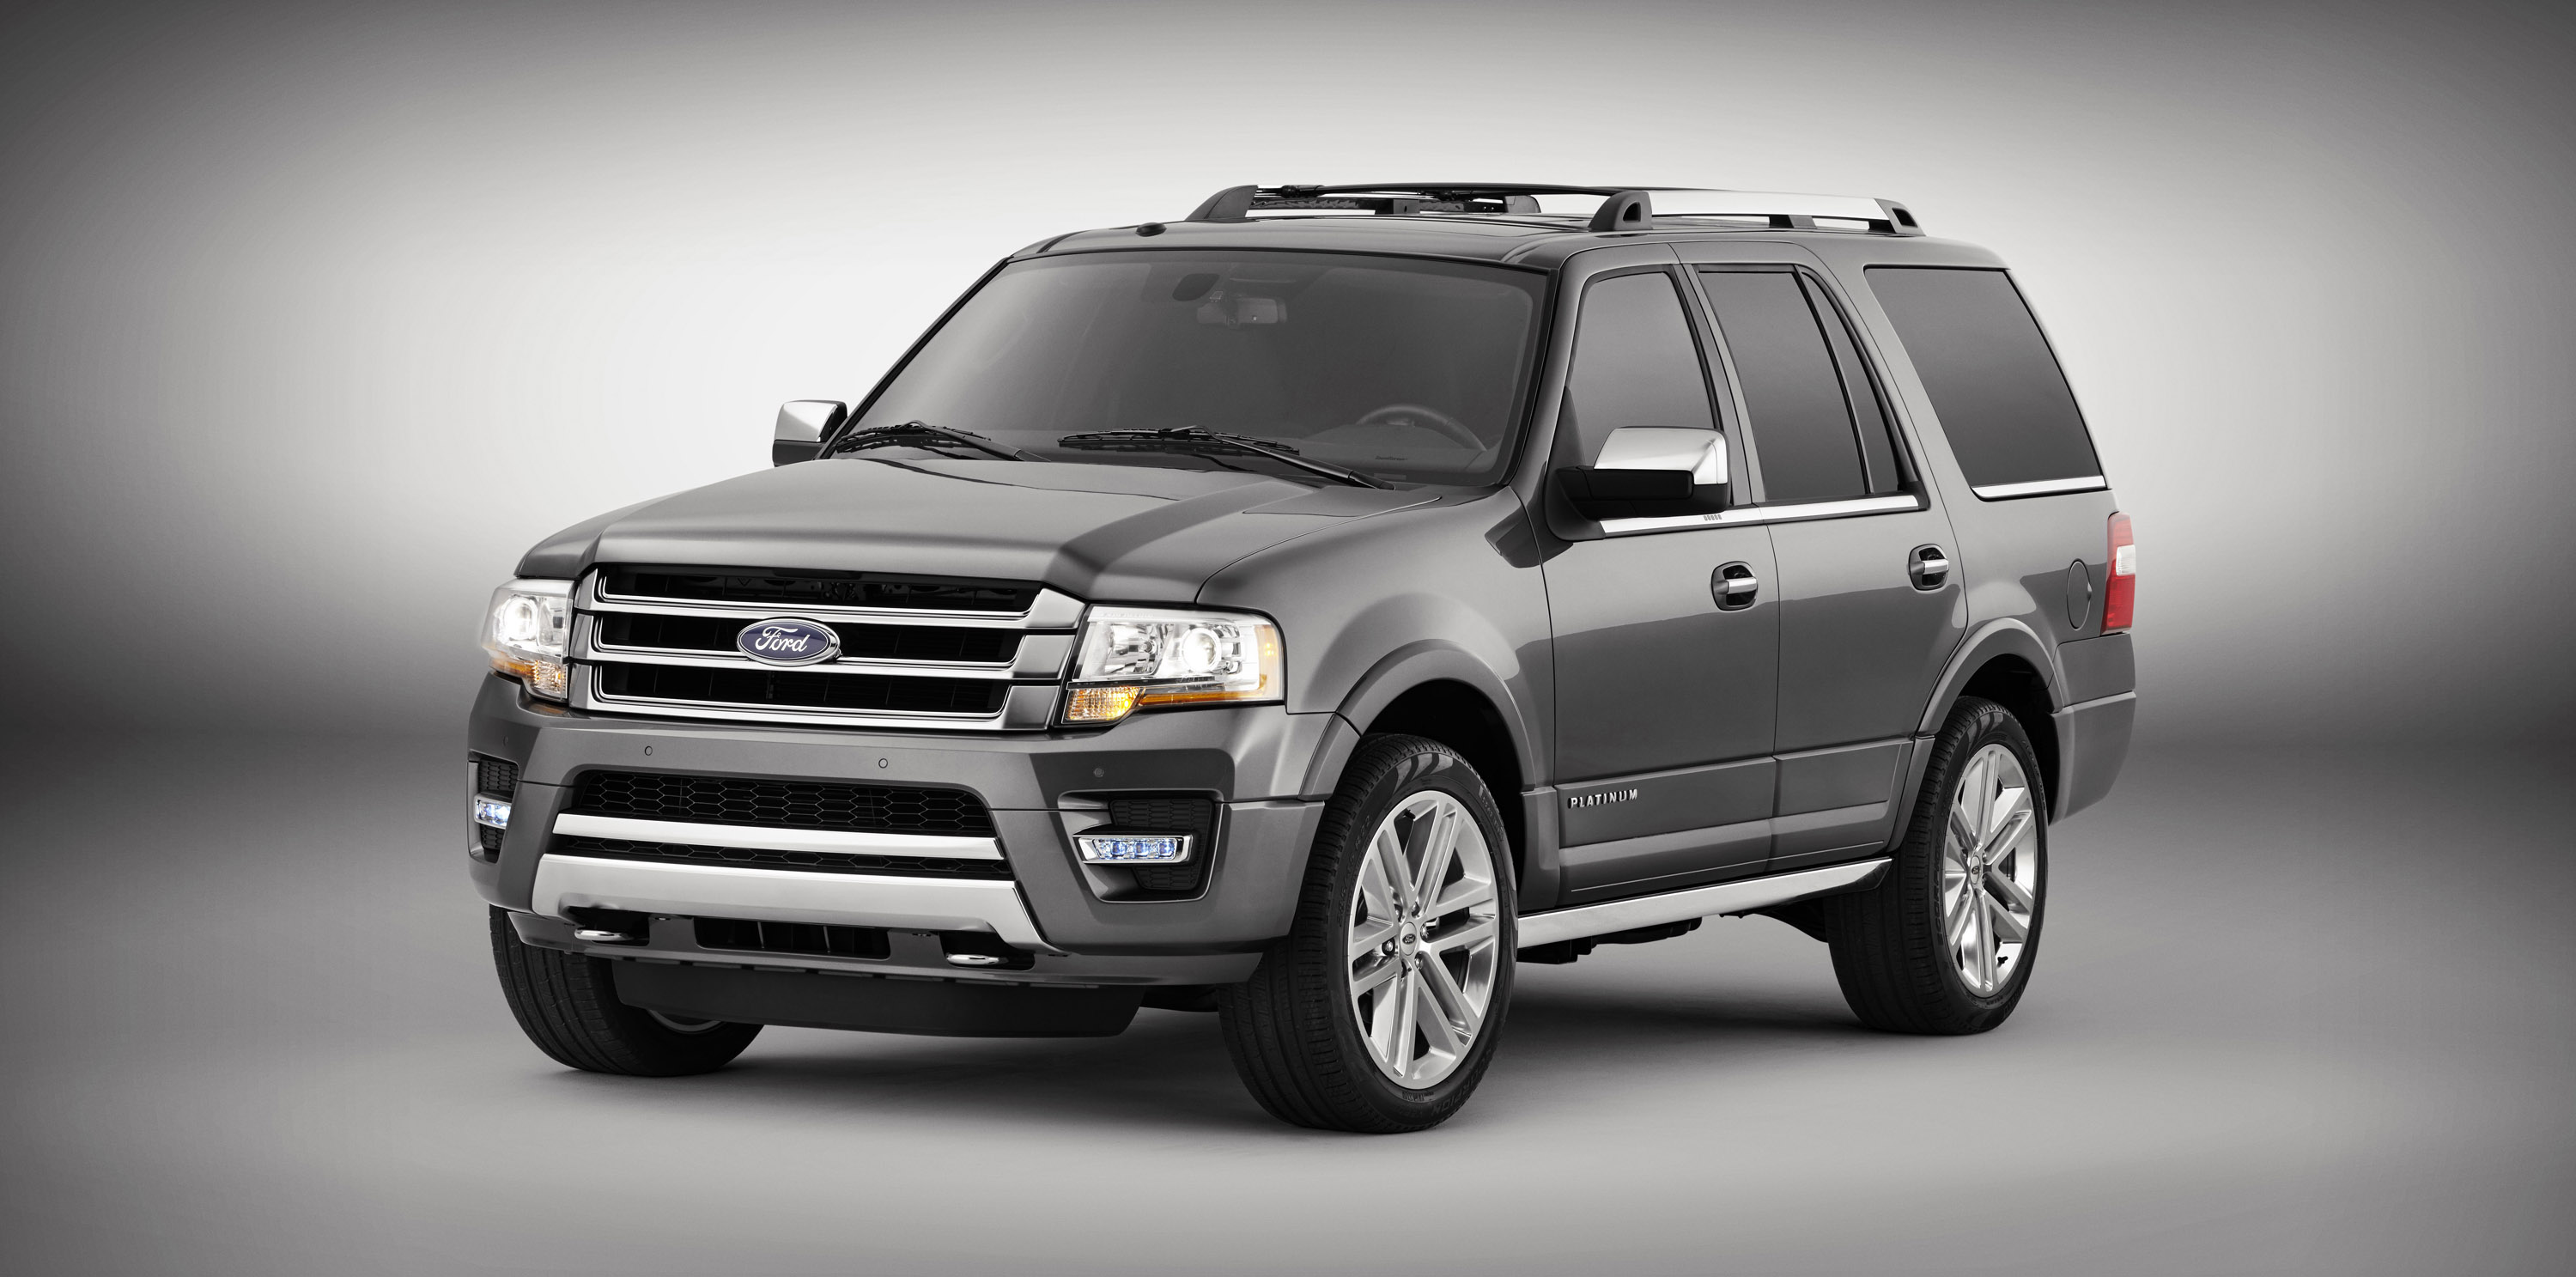 com informations photos expedition bestcarmag makes ford articles